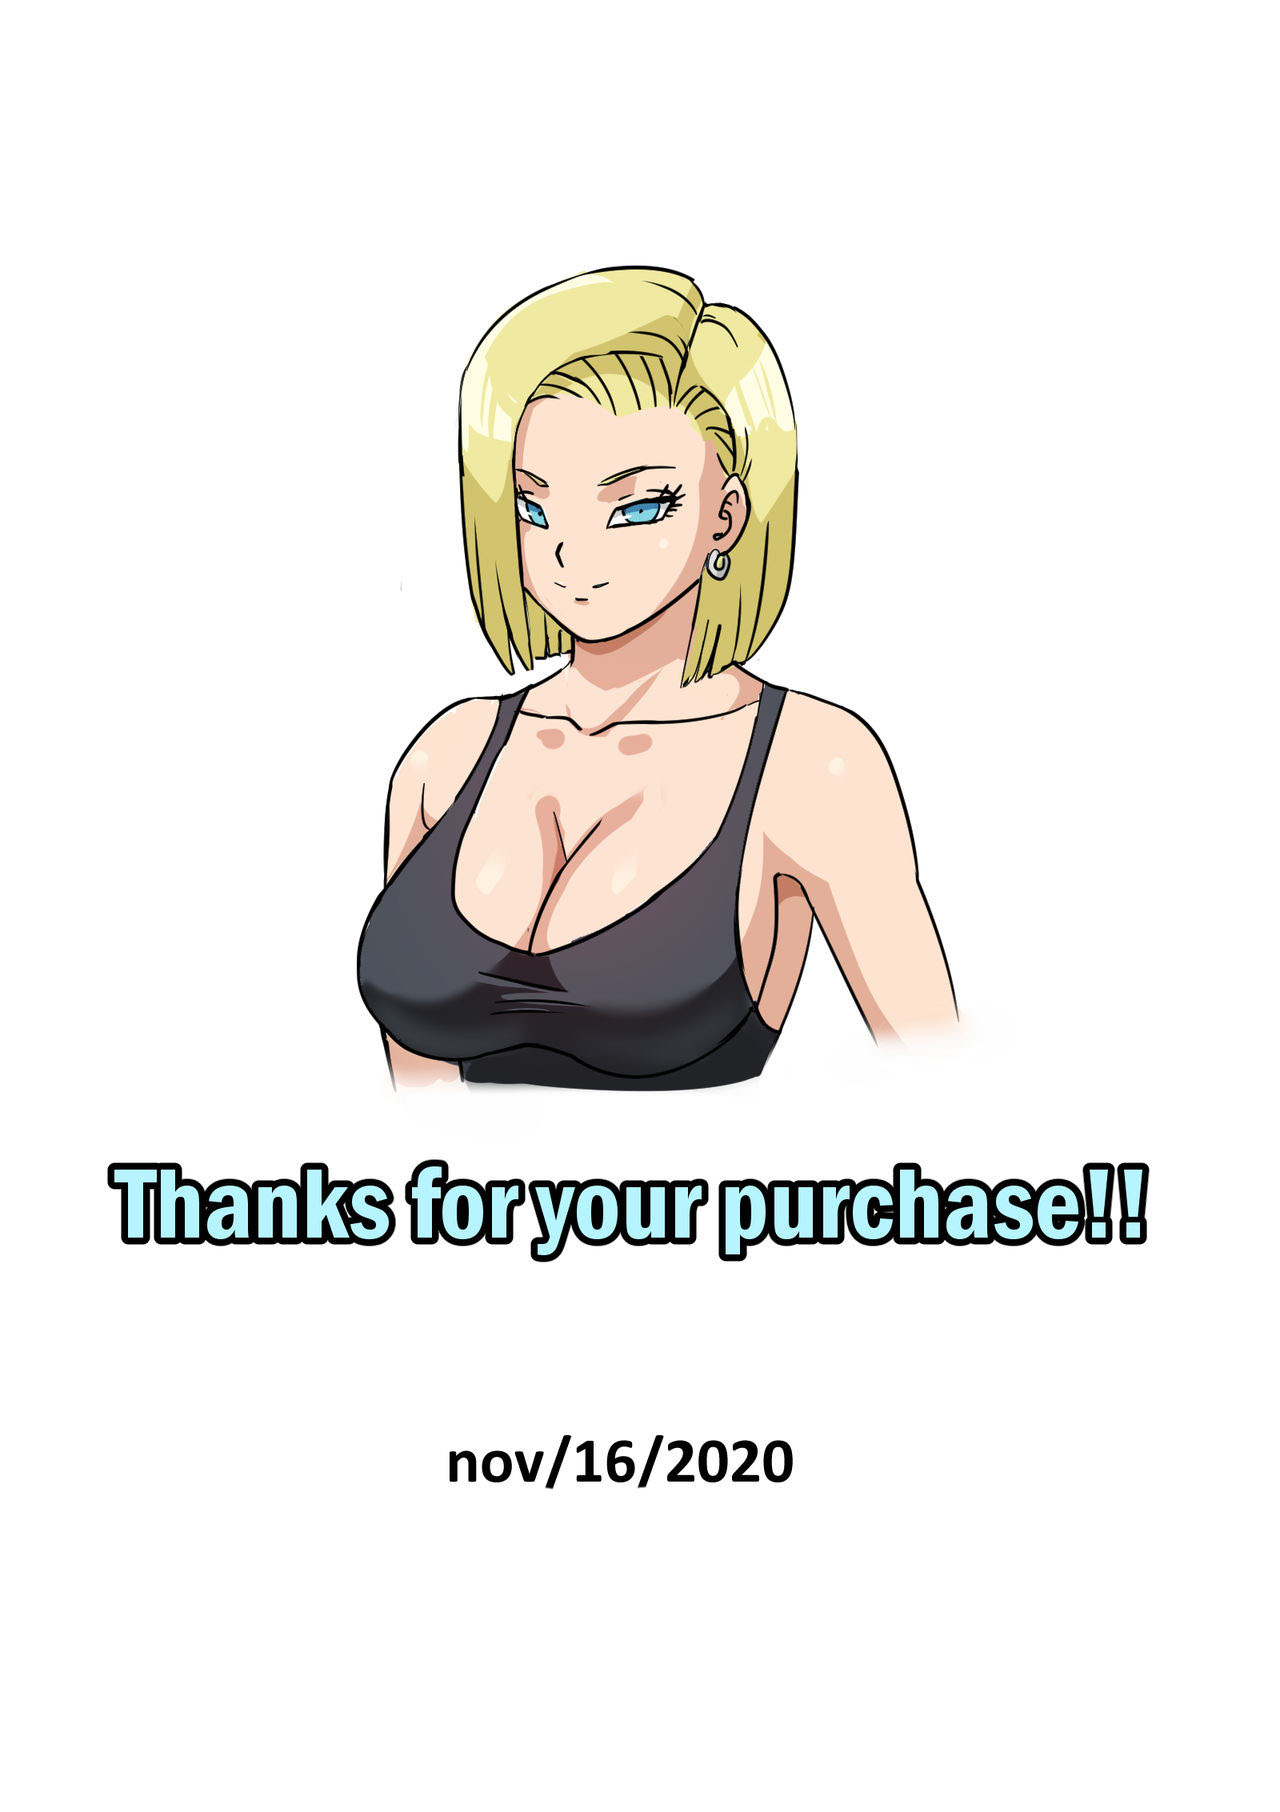 ANDROID 18 NTR parte 3